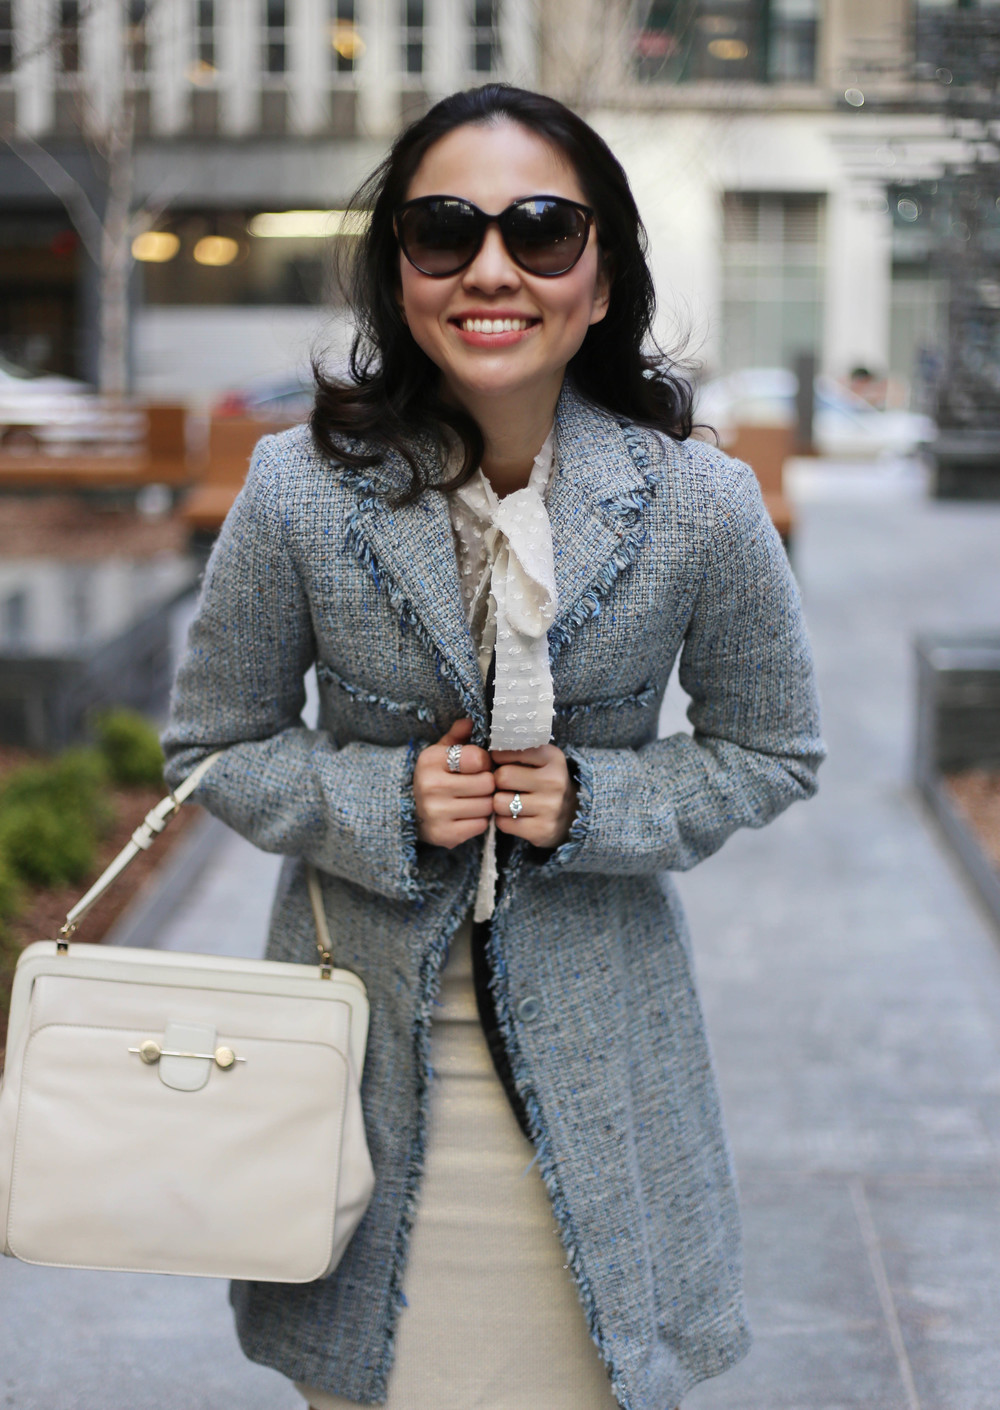 chanel tweed jacket.jpg